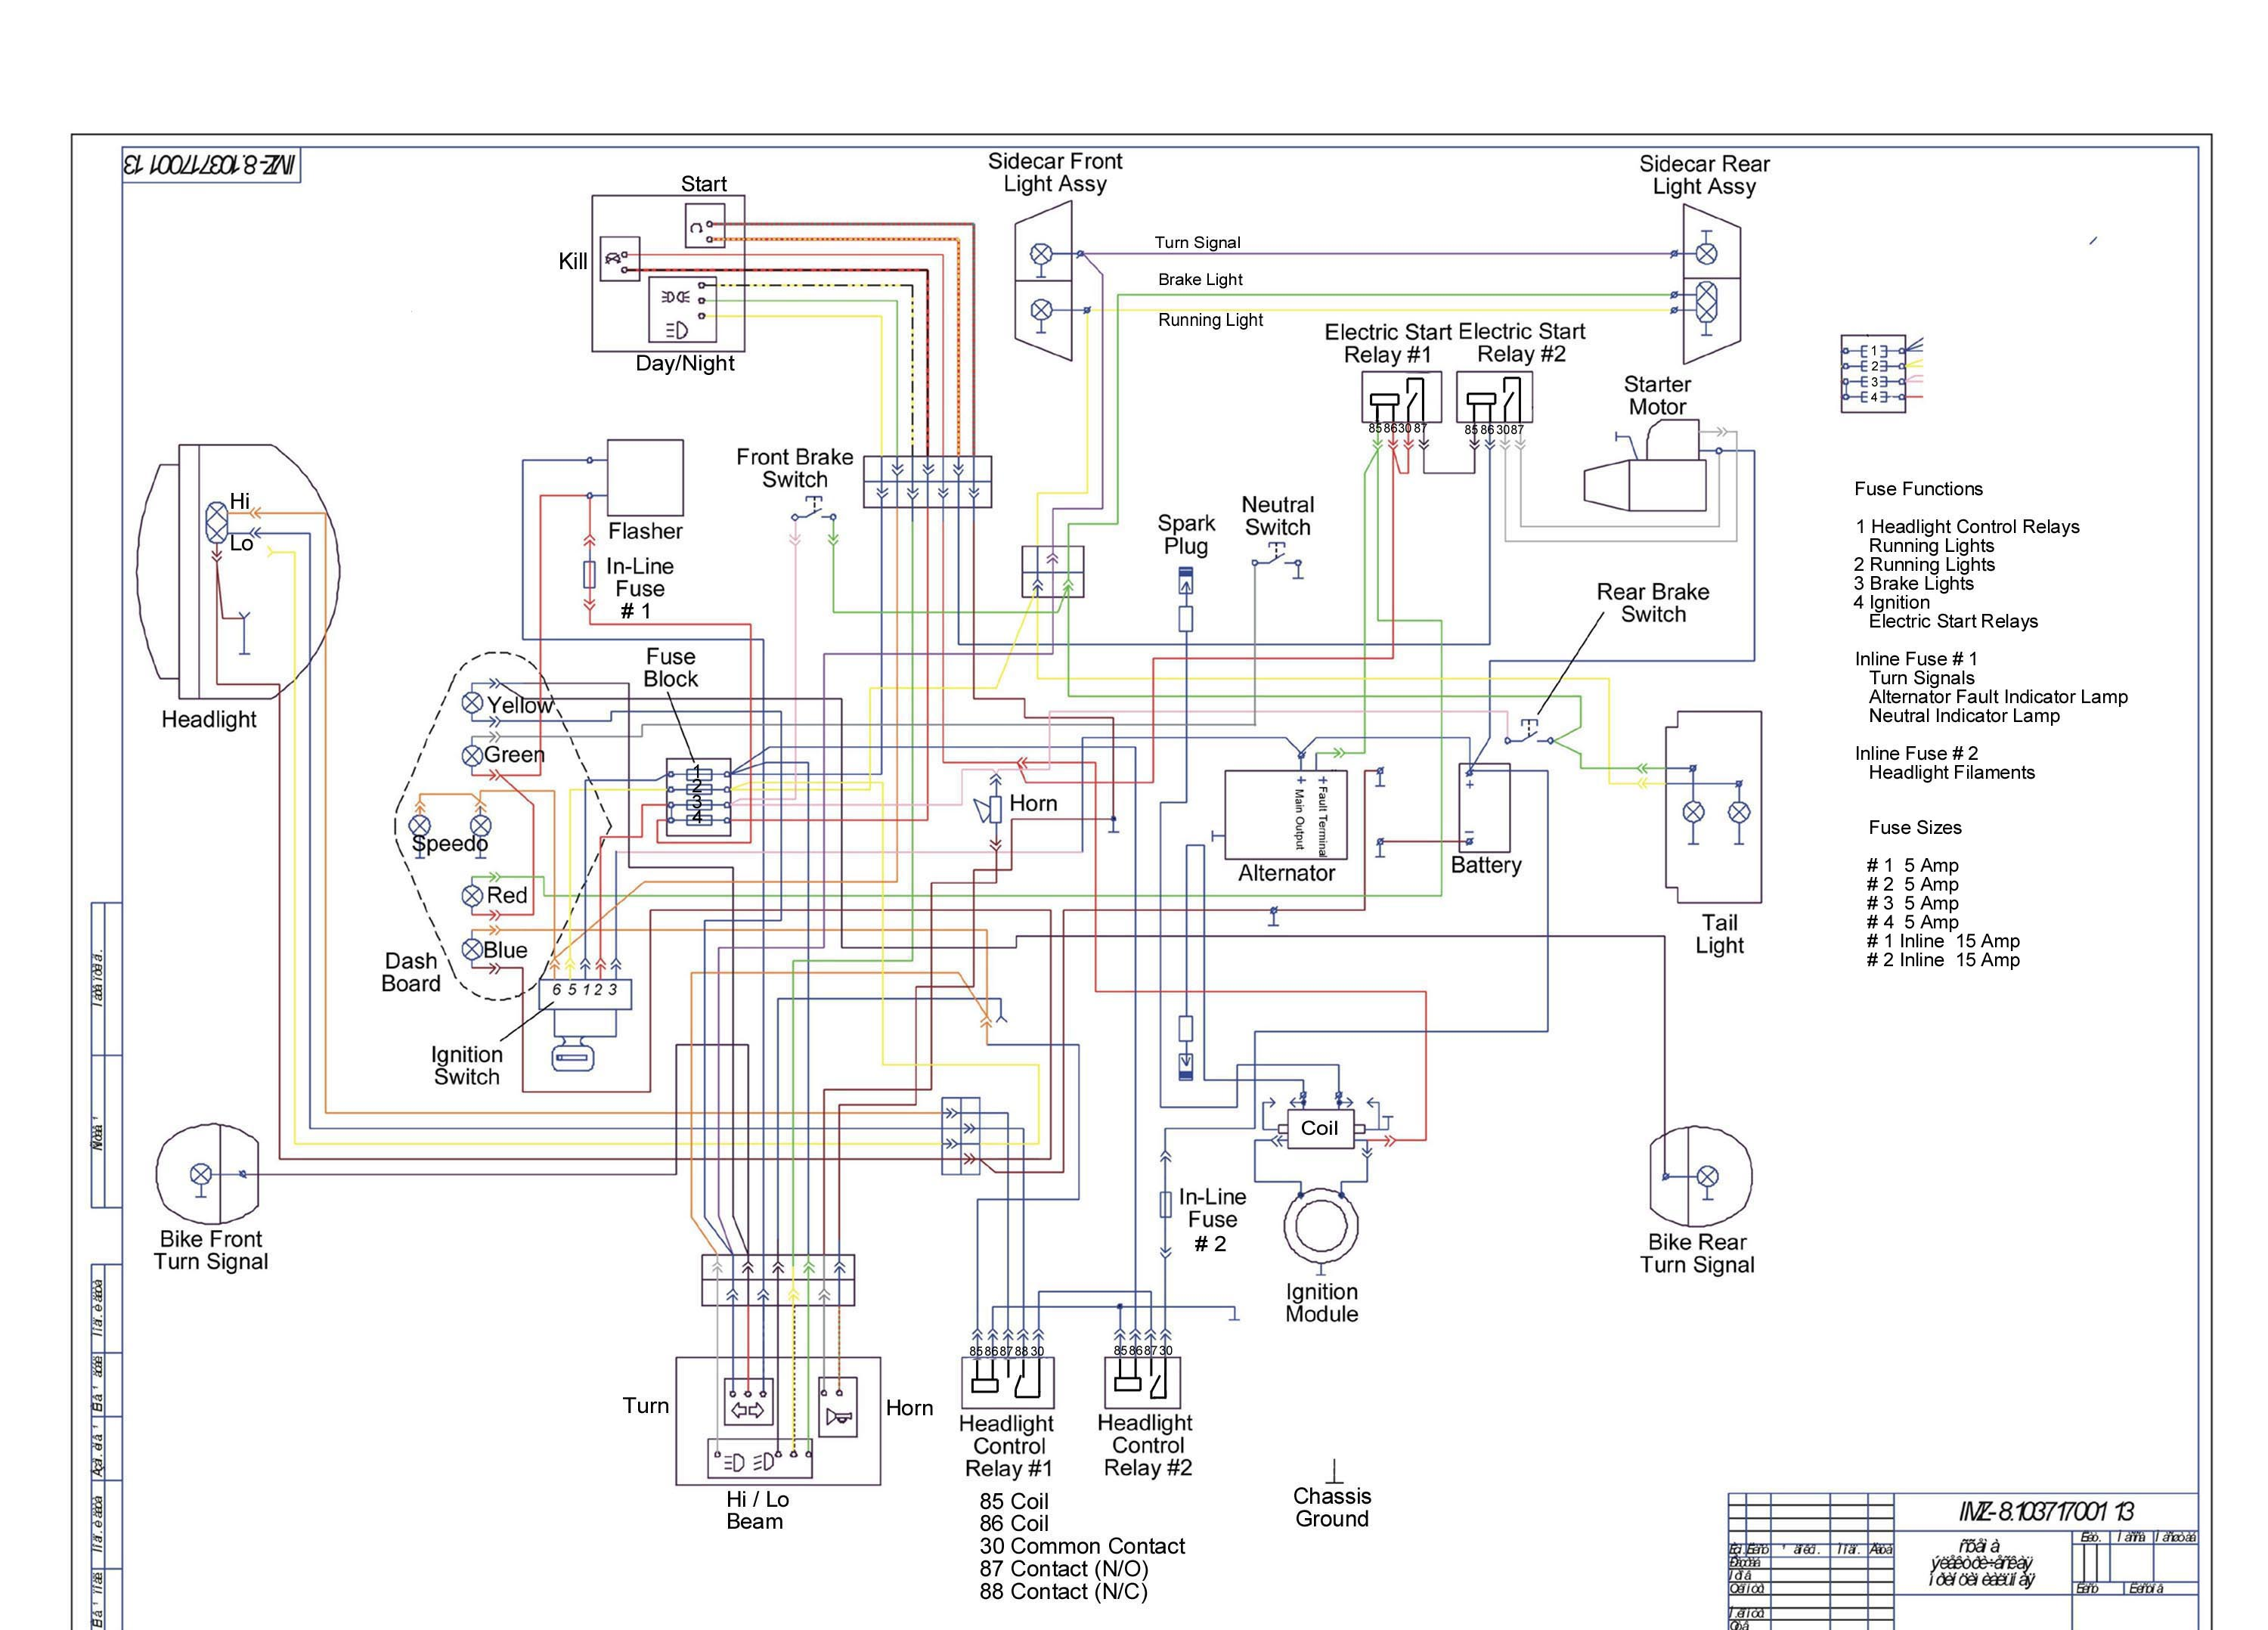 750 Wiring Schematic?resize\\\\\\\\\\\\\\\=665%2C478 celestion wiring diagrams wiring diagram shrutiradio celestion wiring diagrams at readyjetset.co